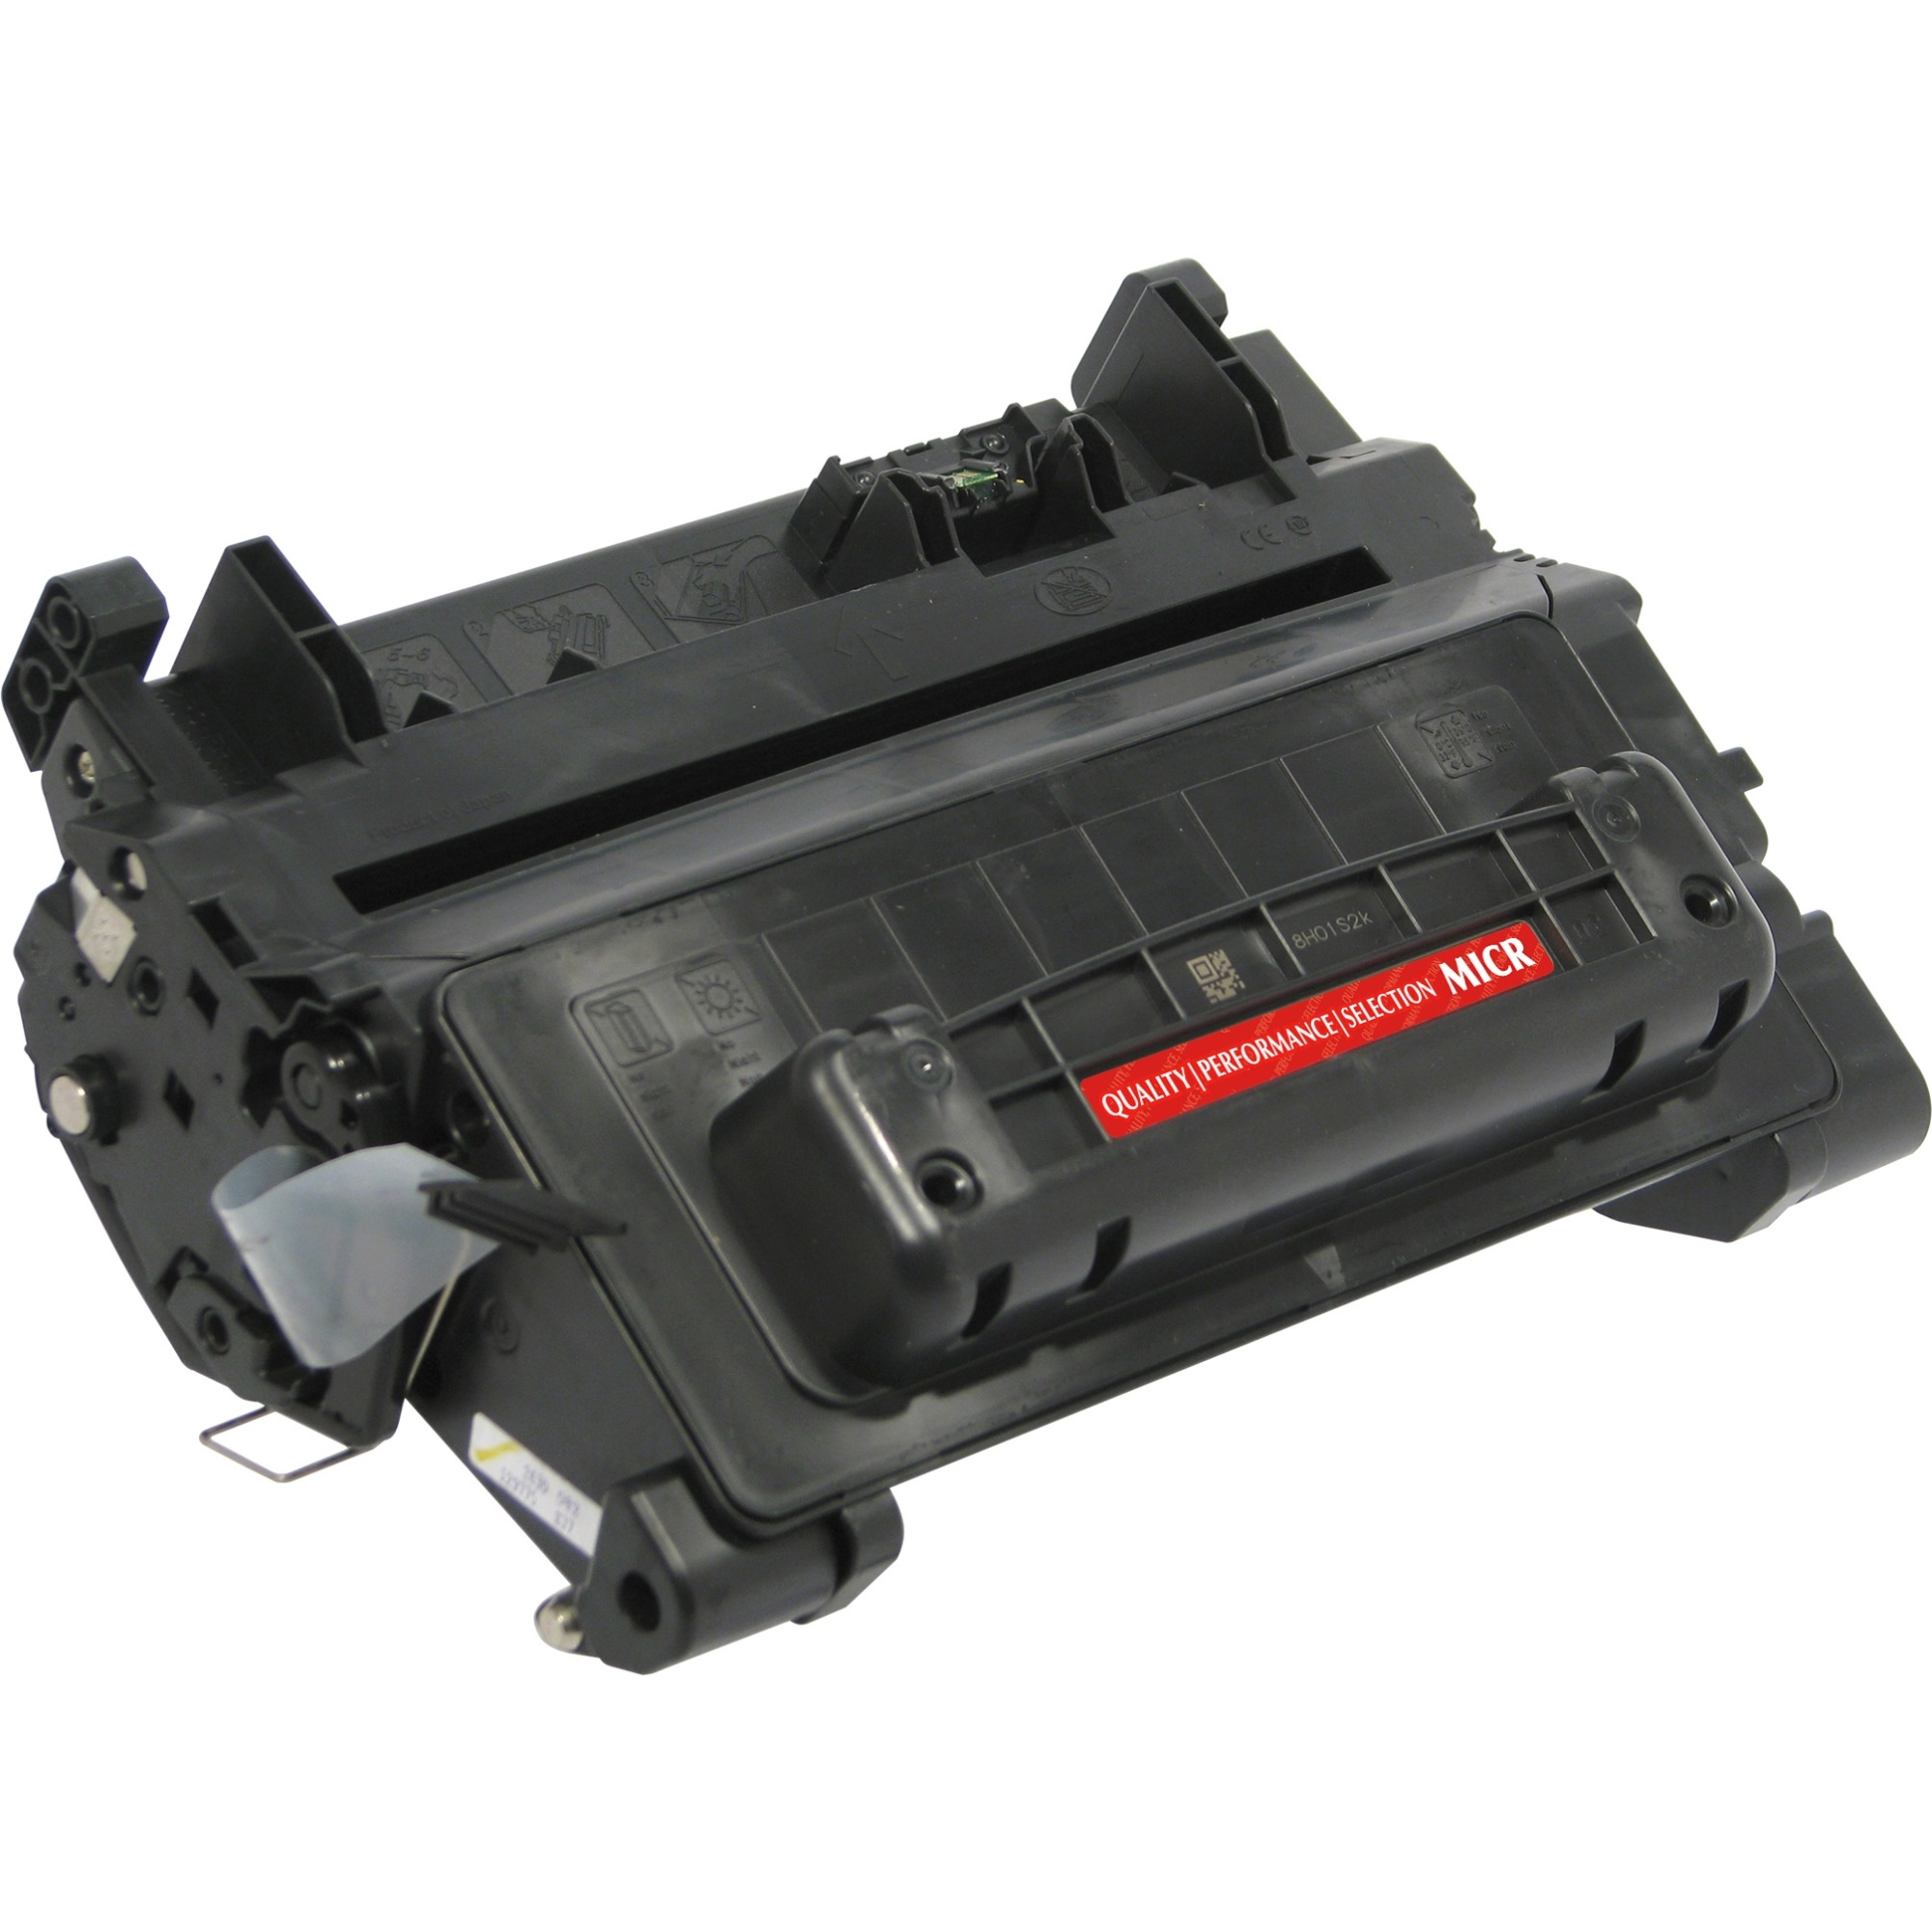 MICR High Yield Toner Cartridge for HP LaserJet P4014 P4014DNP4014N P4015P4015DN P4015N P4015TN P4515 P4515DN P4015X P4515N P4515TN P4515X P4515XM TROY 02-81300-001 10K YLD - Laser - 10000 Page